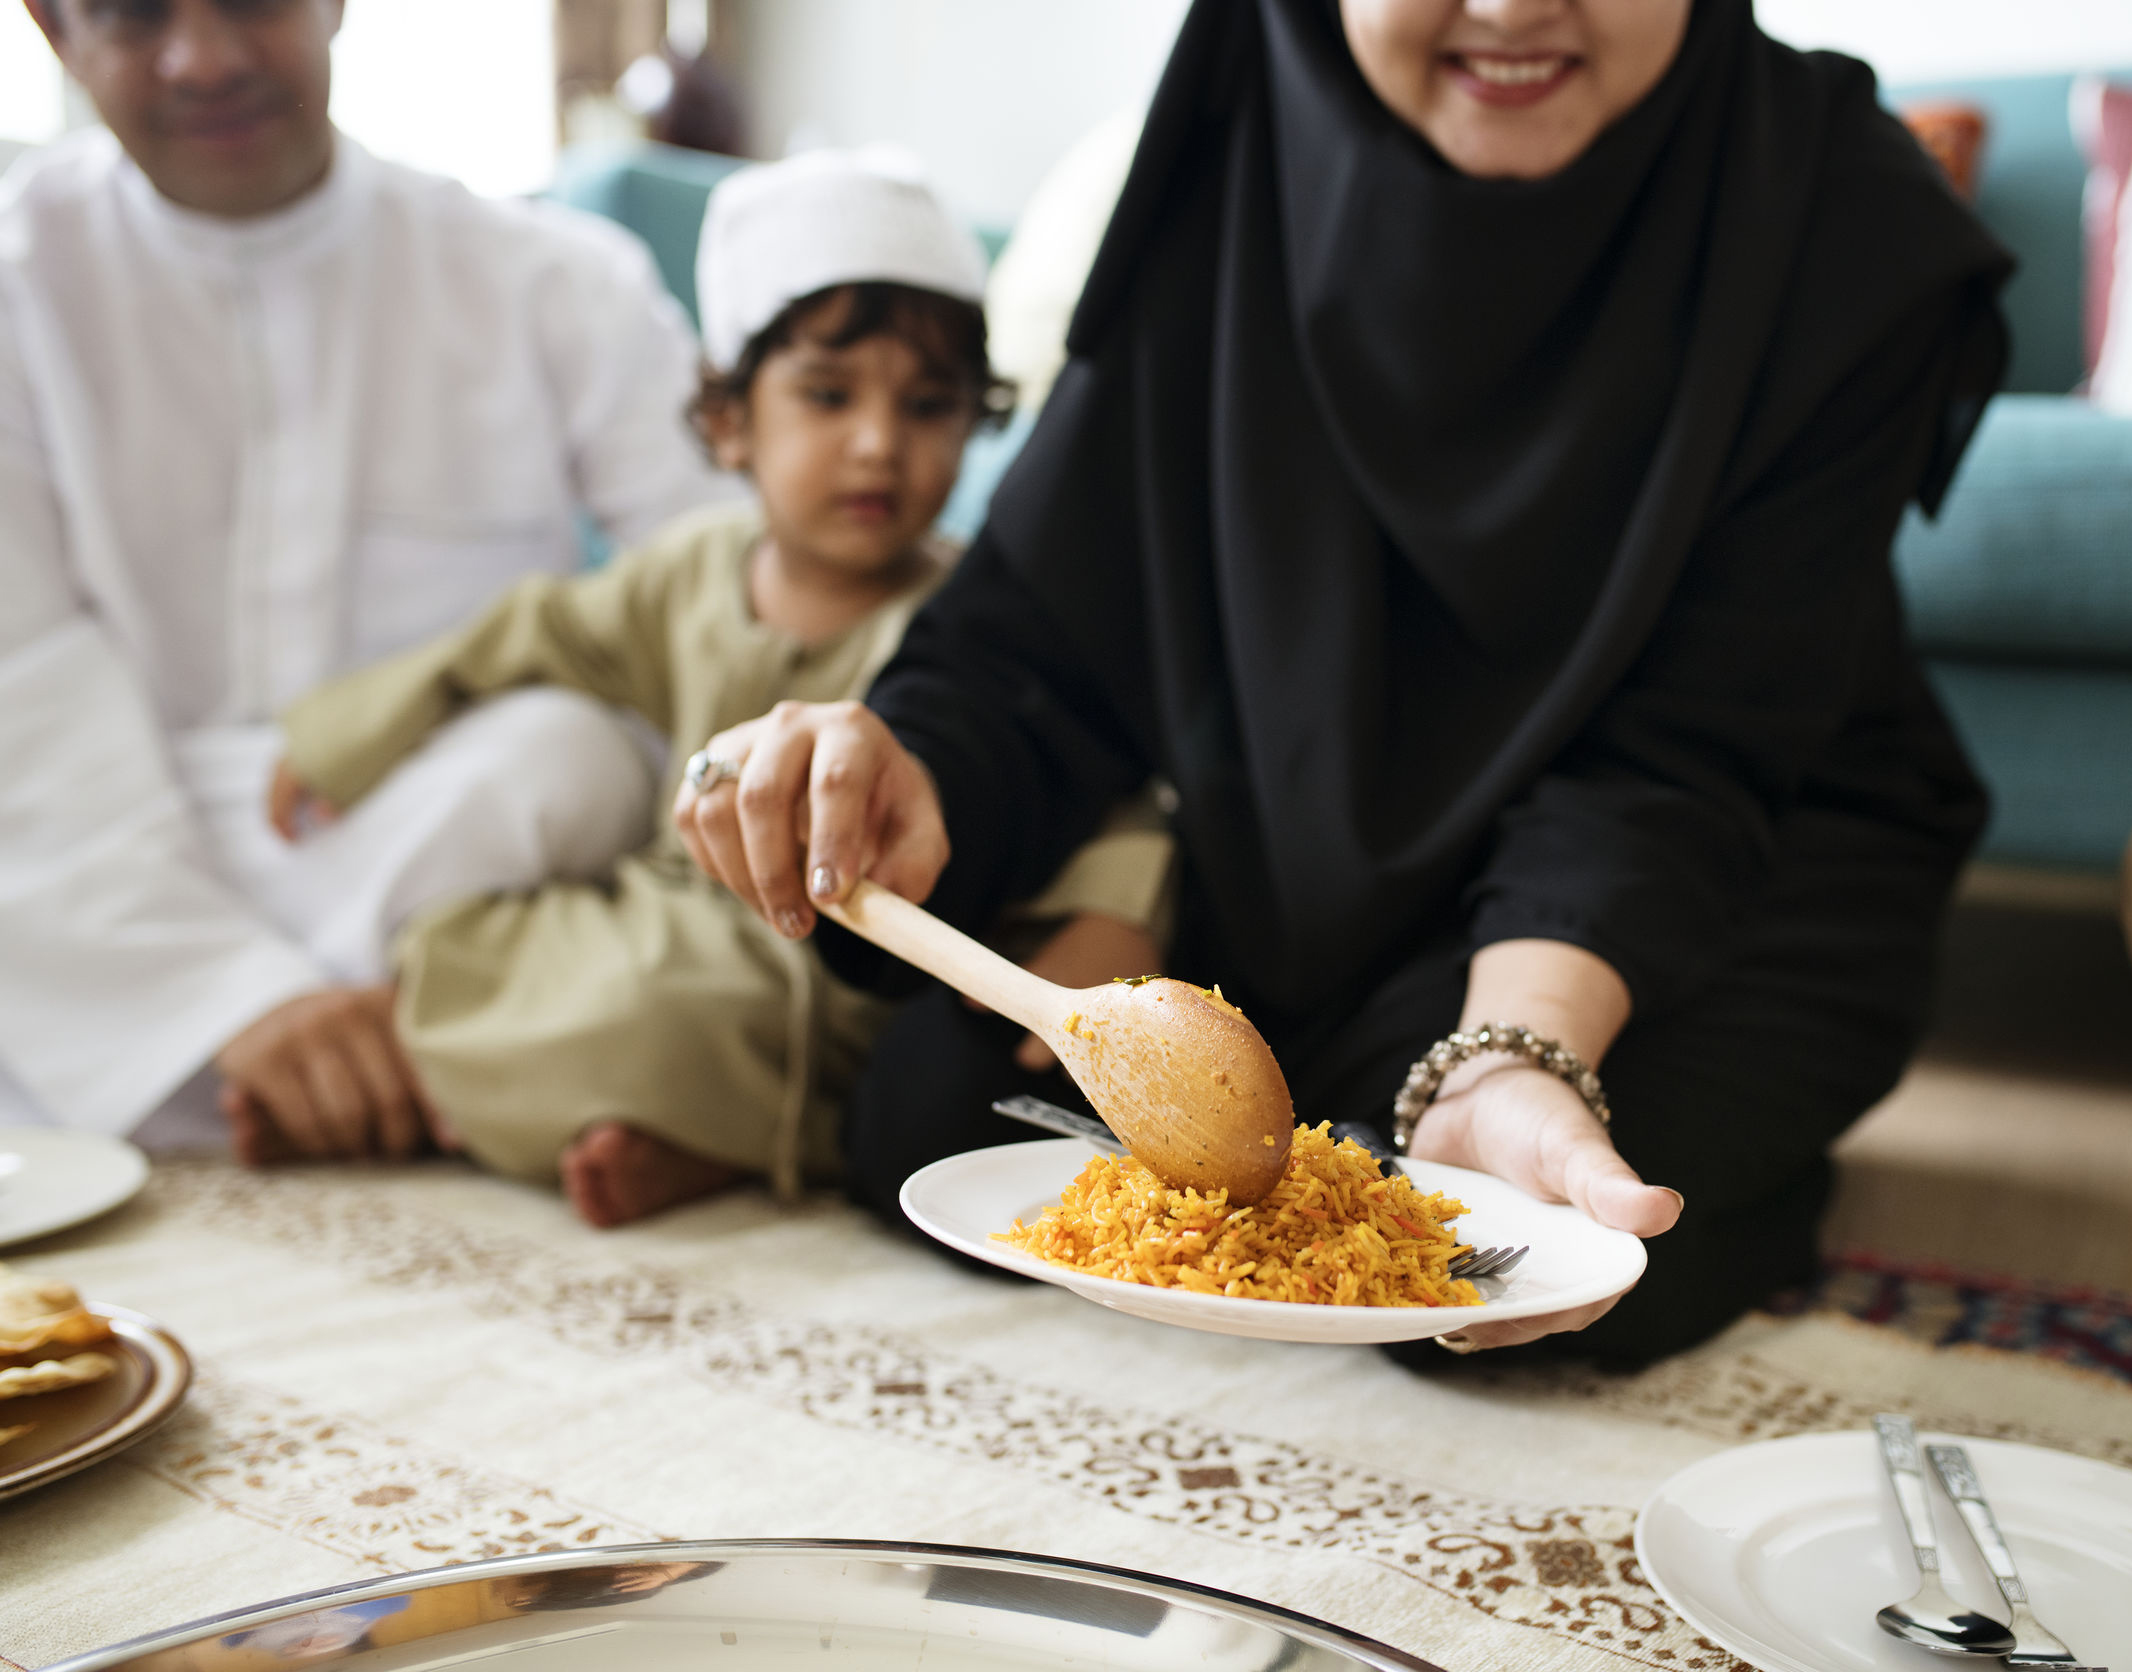 Woman offers plate filled with rice as man and young child look on